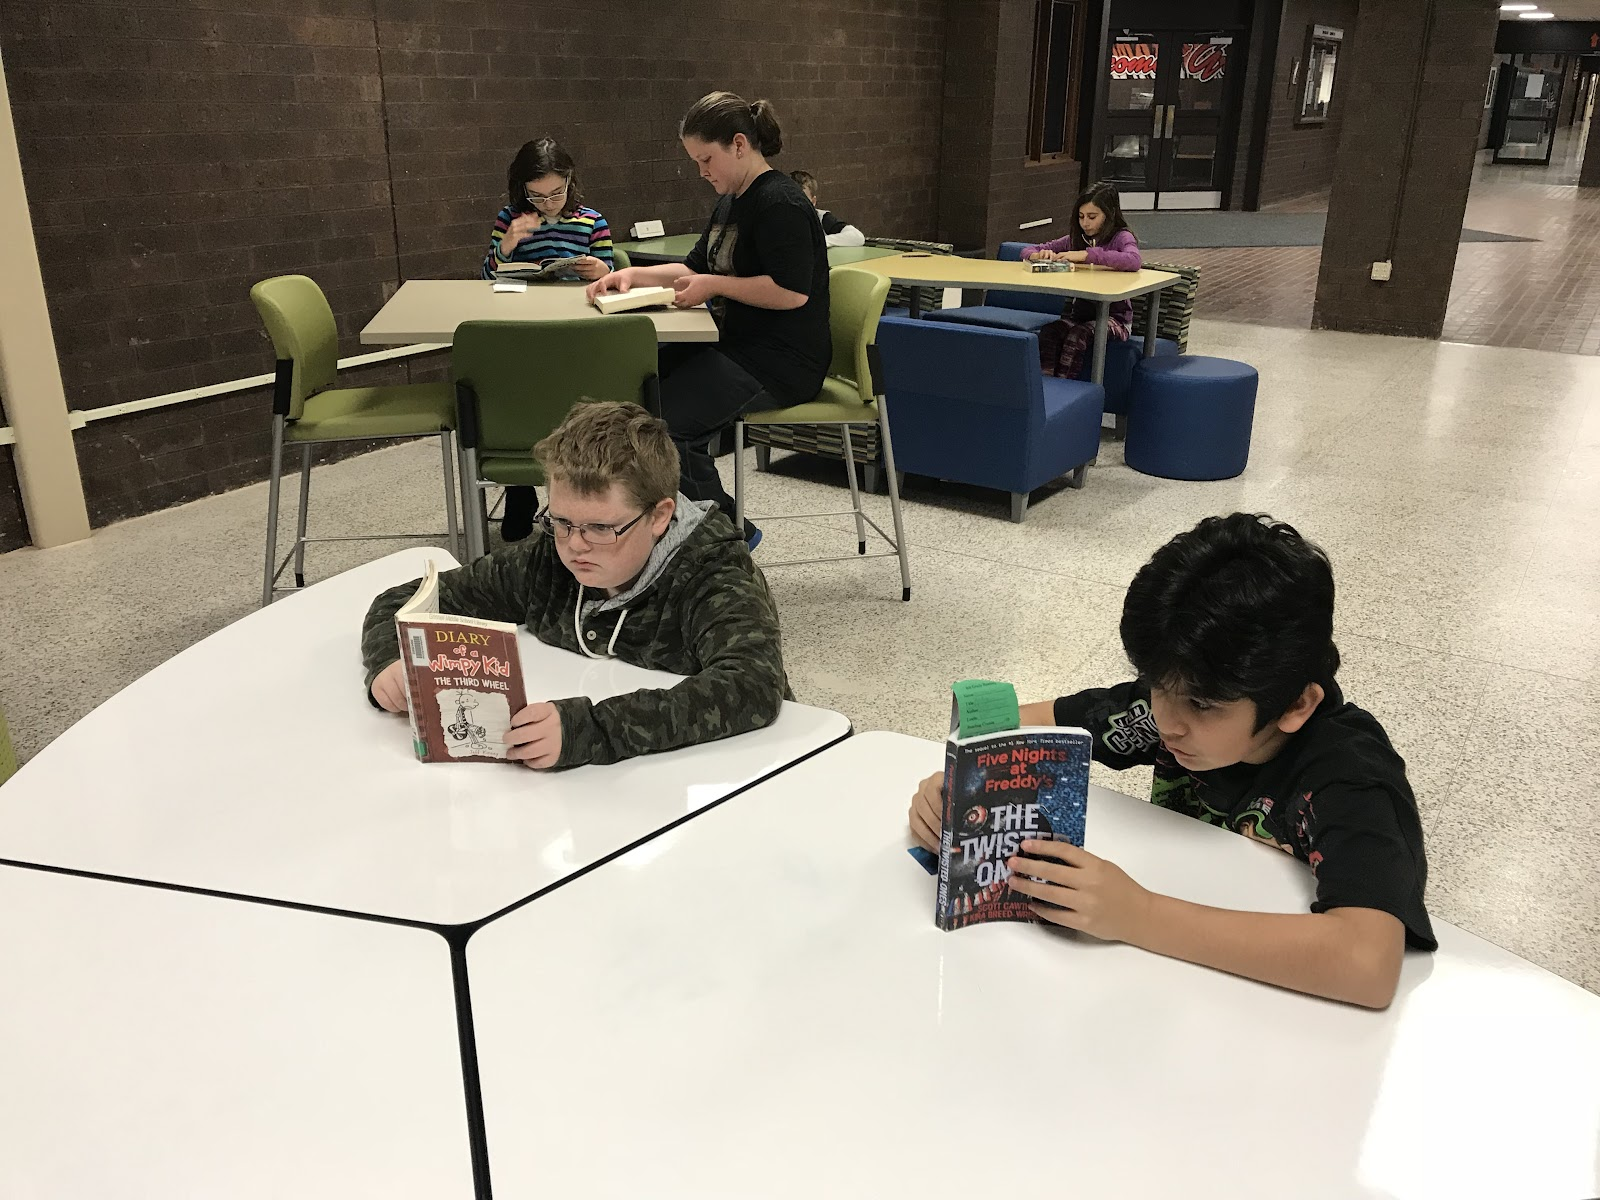 Middle School Students and Staff finding time to work together, read together, or learn together!